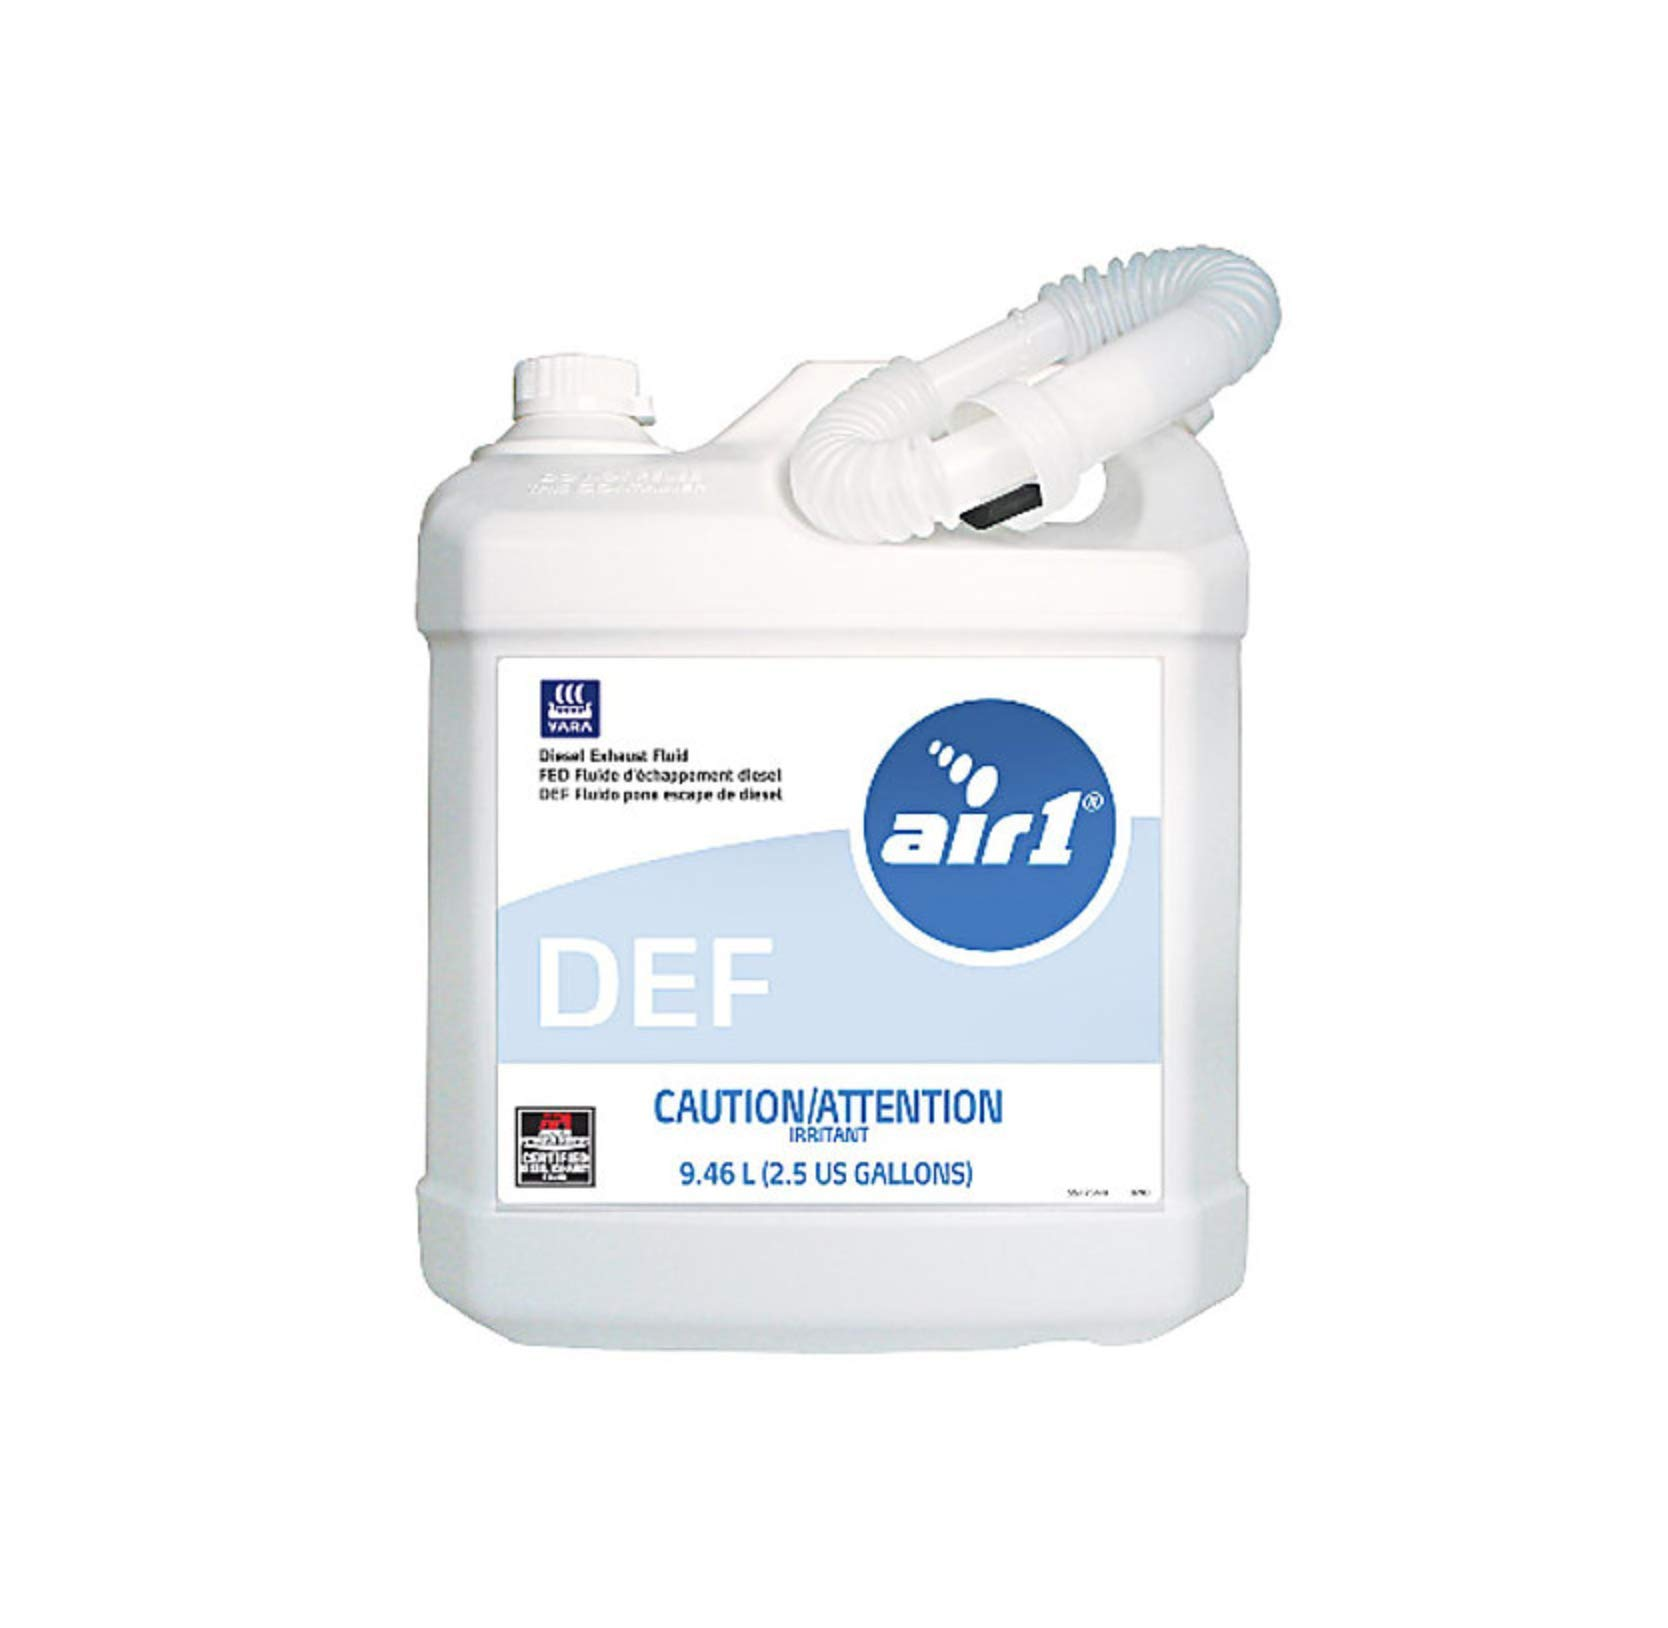 Air 1 Diesel Exhaust Fluid 96 Each x 2.5 Gallon Jugs by Silver Transfer STS-25NA2 (Lift GATE DEL)